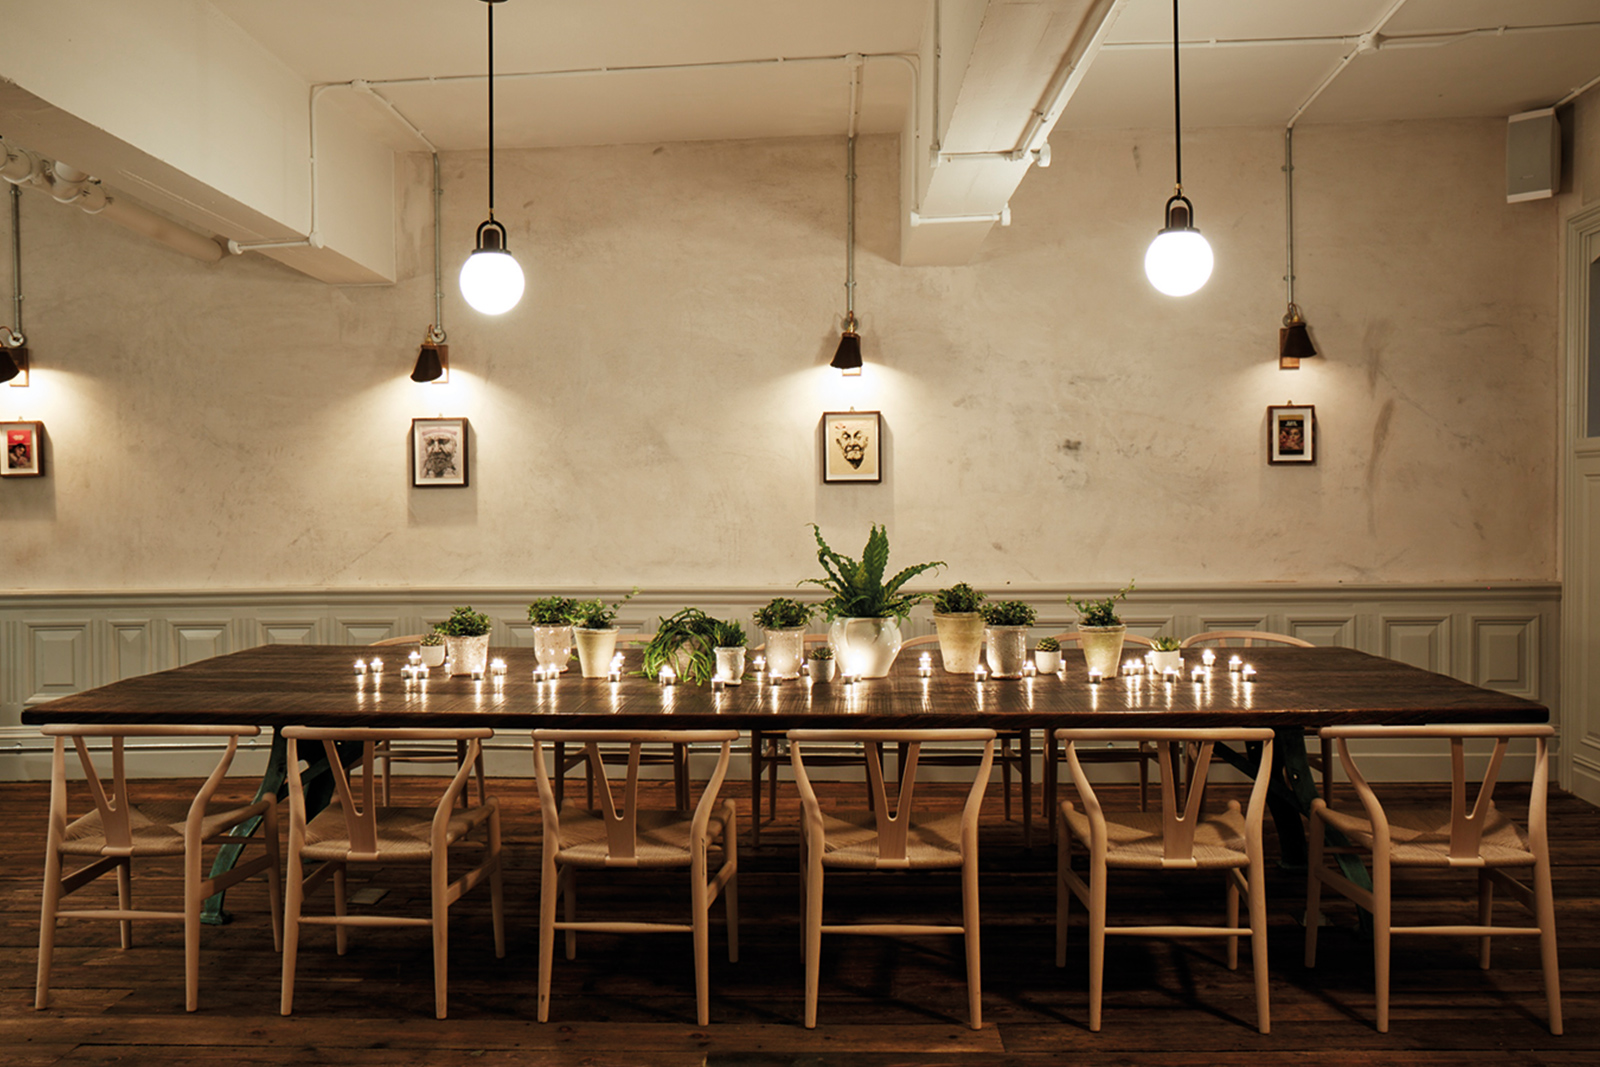 private dining room - Private dining and meetings for up to 30 guests